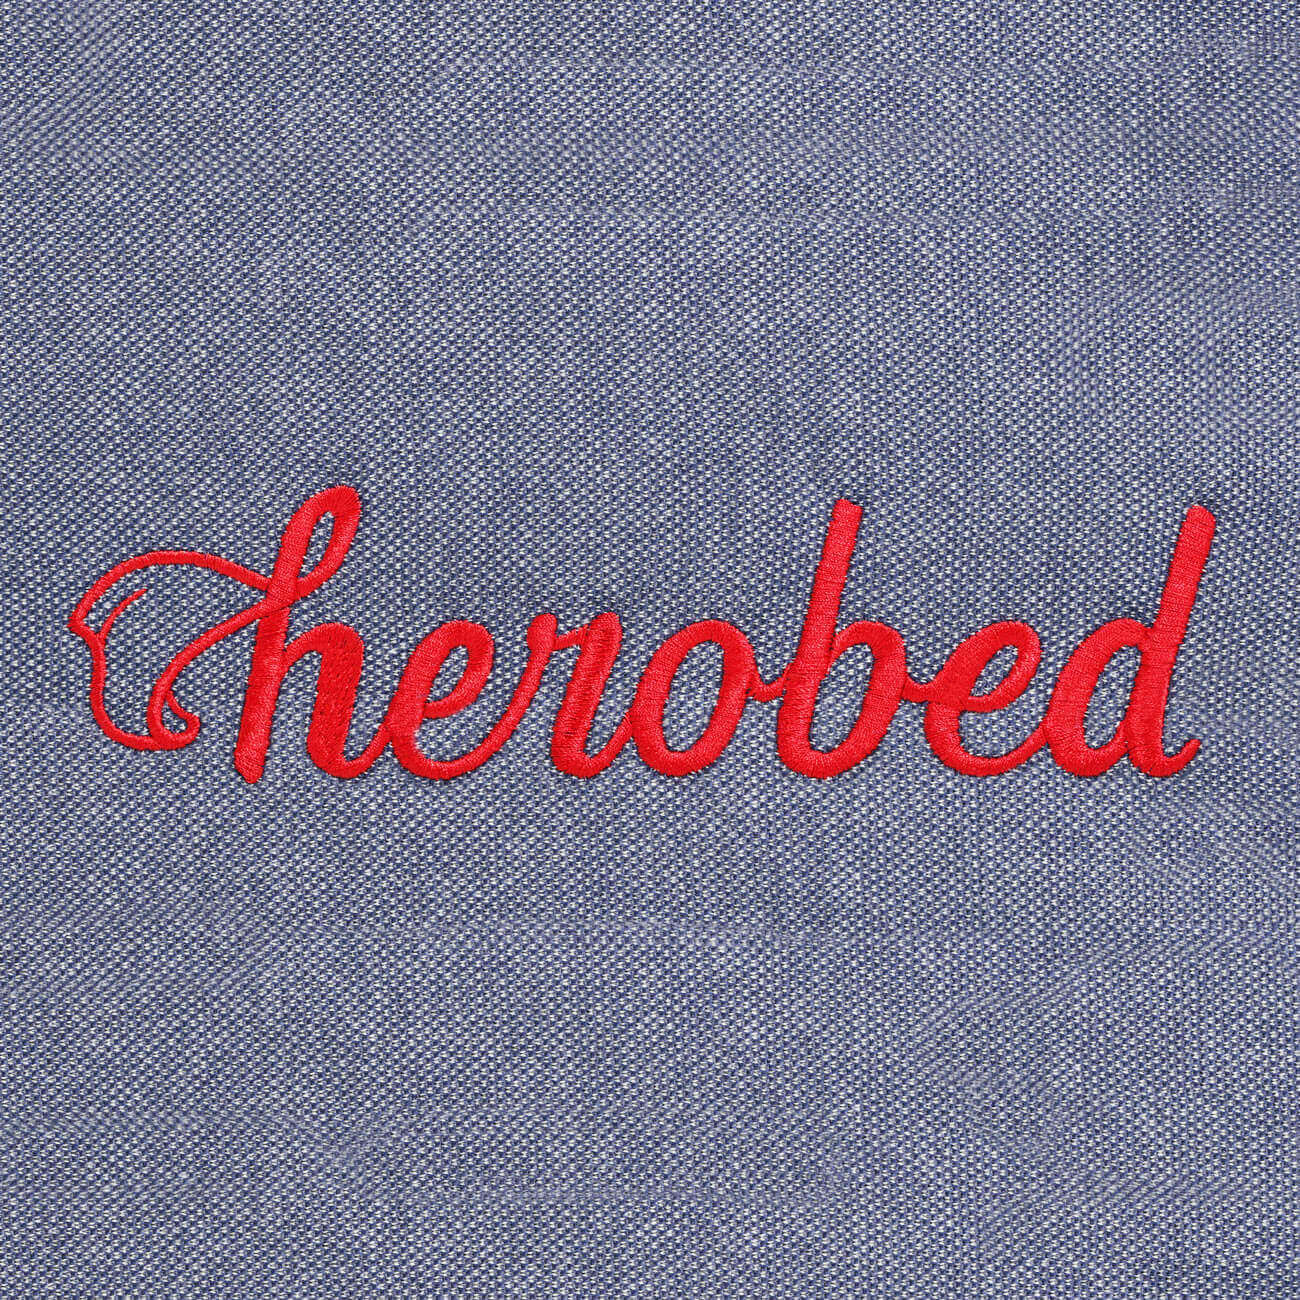 HEROBED_logo_embroidery